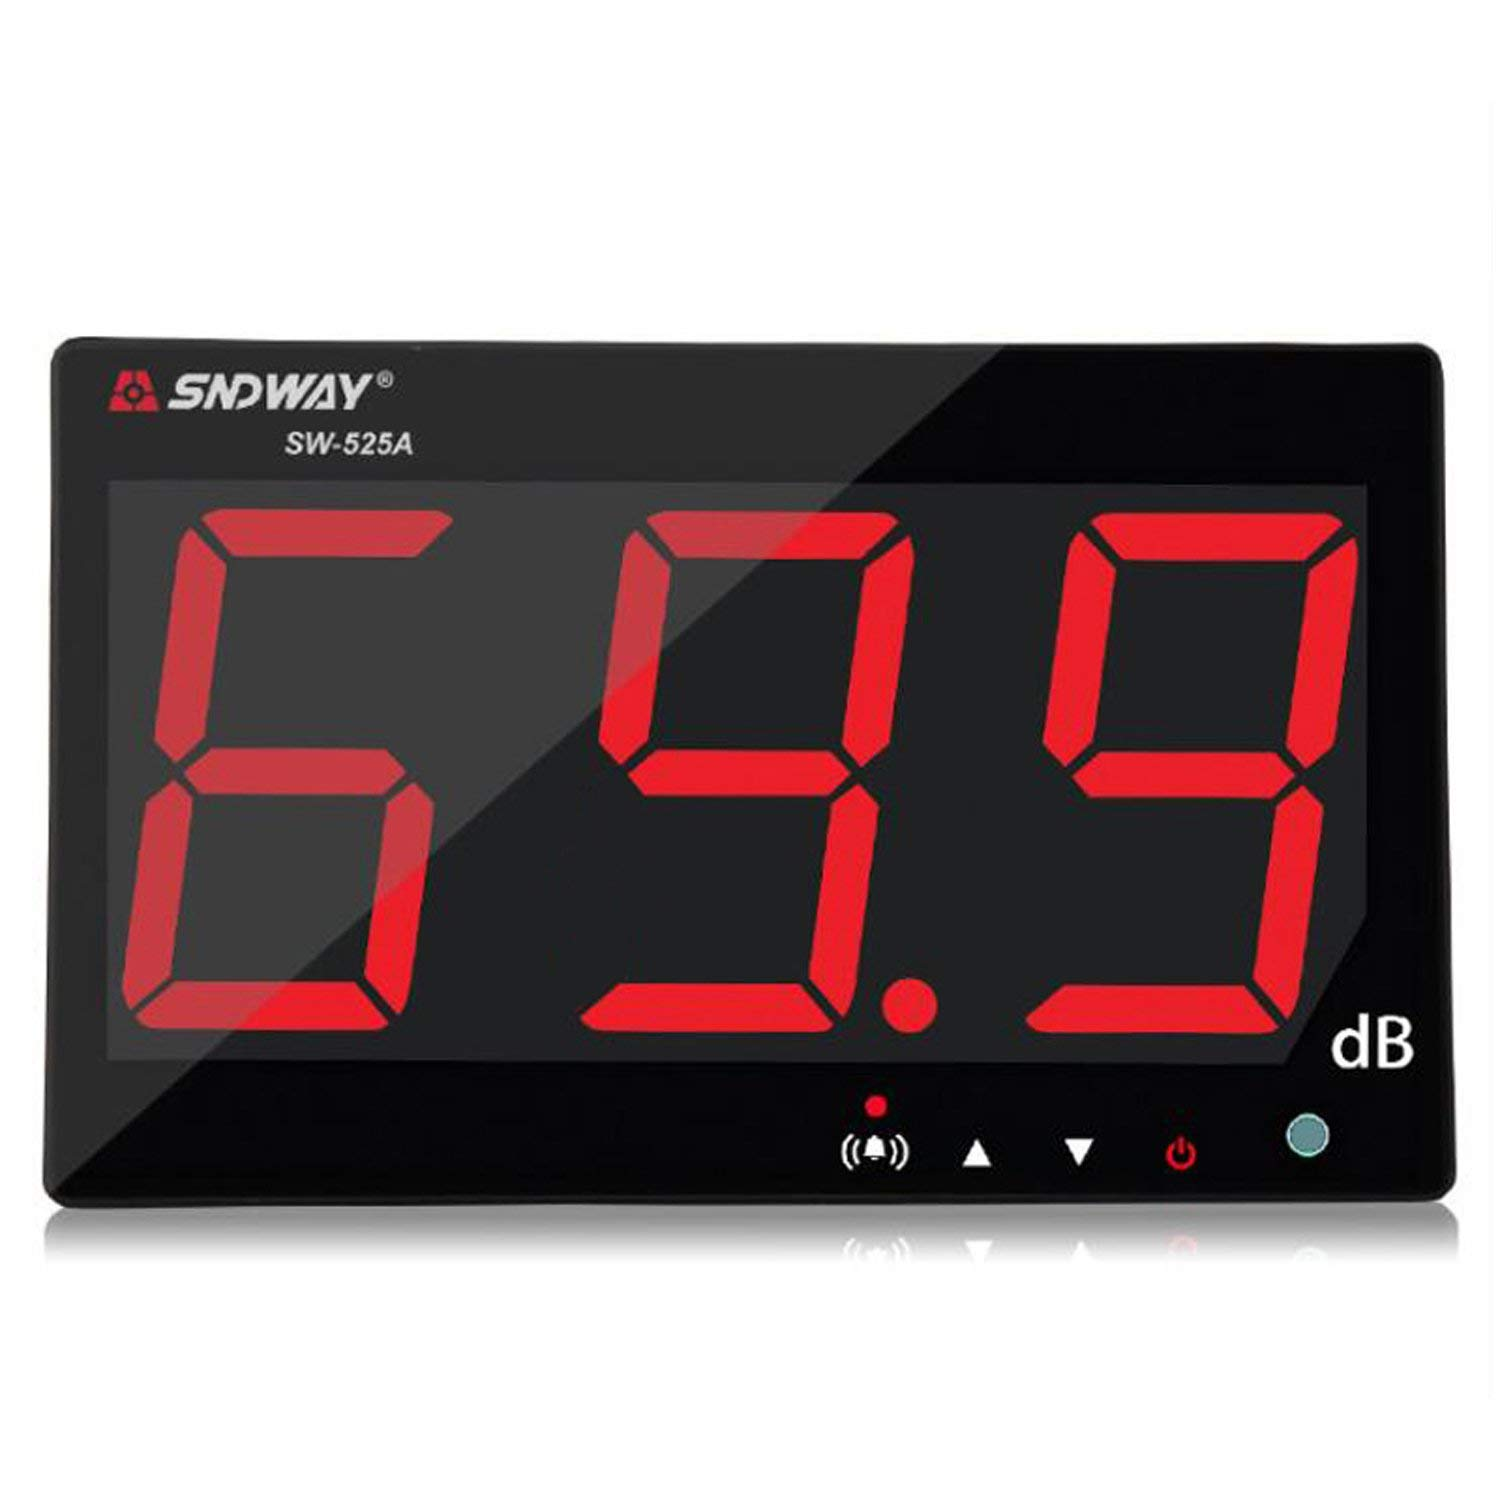 SNDWAY SW-525A 30-130dB Digital Sound Level Meter with Large LCD Display Noise Meter Decibel Wall Mounted Hanging by SNDWAY